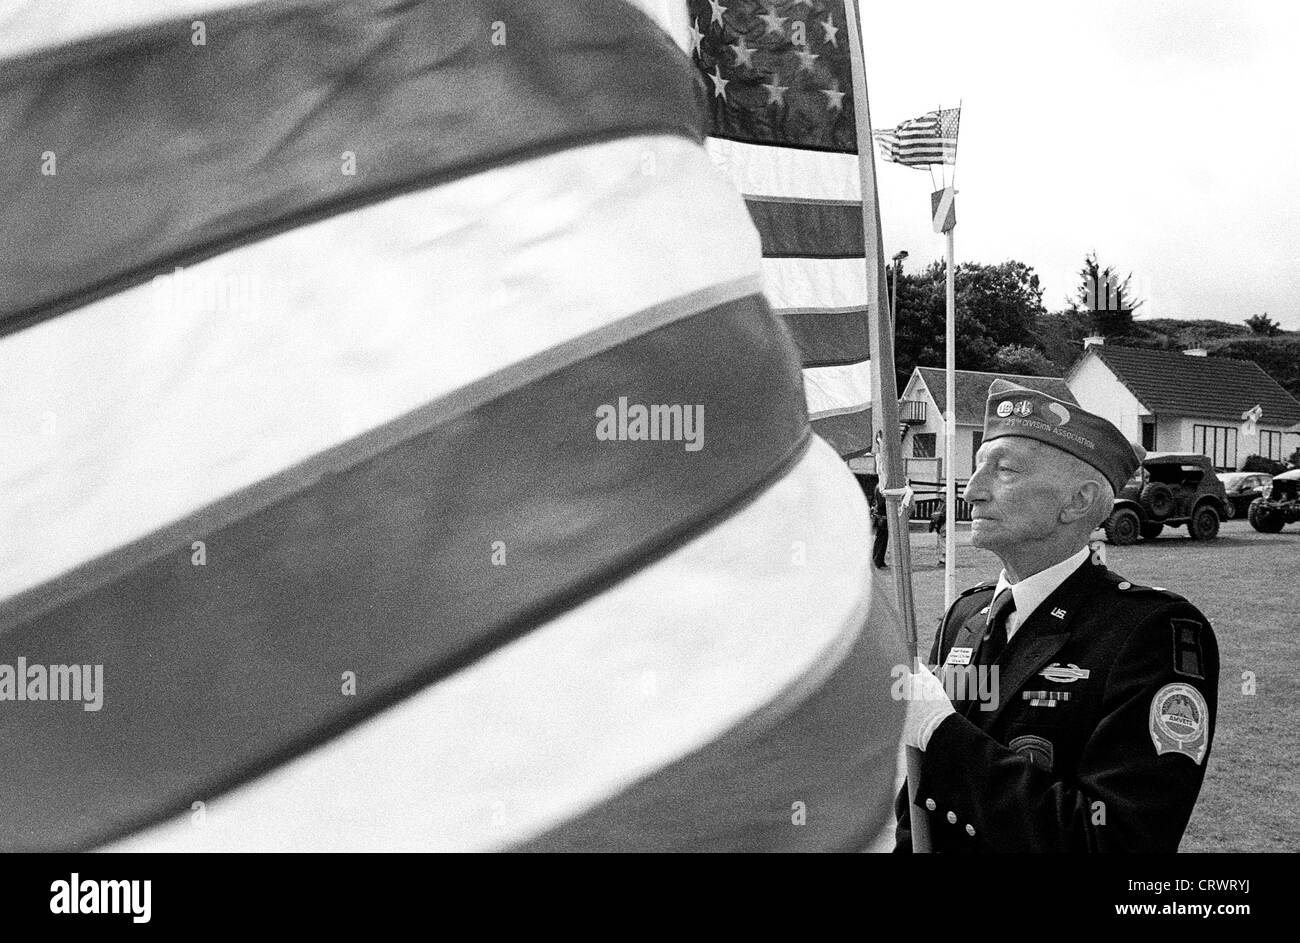 Veterans on the 50th Anniversary of the Normandy landings - Stock Image